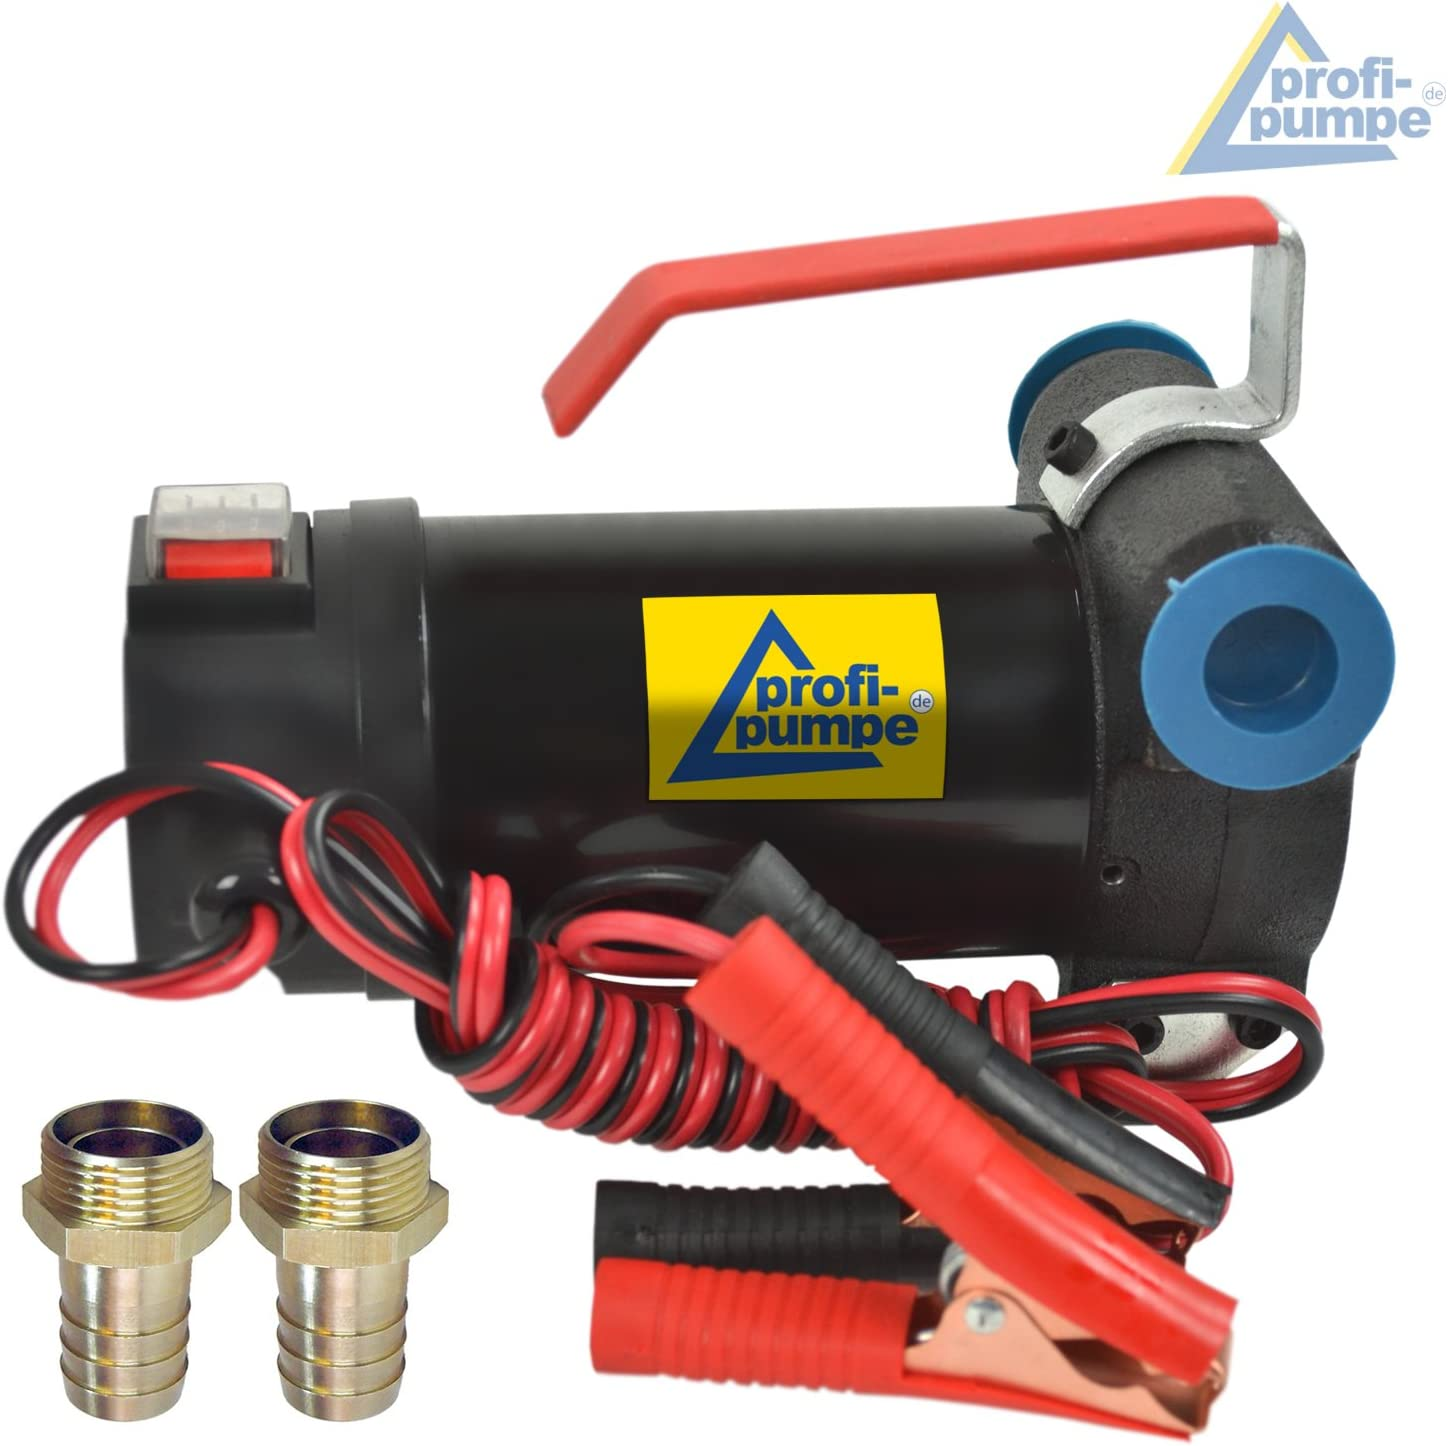 Diesel Transfer Pump Diesel Star 160-1-4 12V with 160 WATT SELF-Priming Your own Portable Station Diesel Pumps BIODIESEL with Aluminium Nozzle Hose and Accessories Pumps CAR Transfer for Diesel Pump